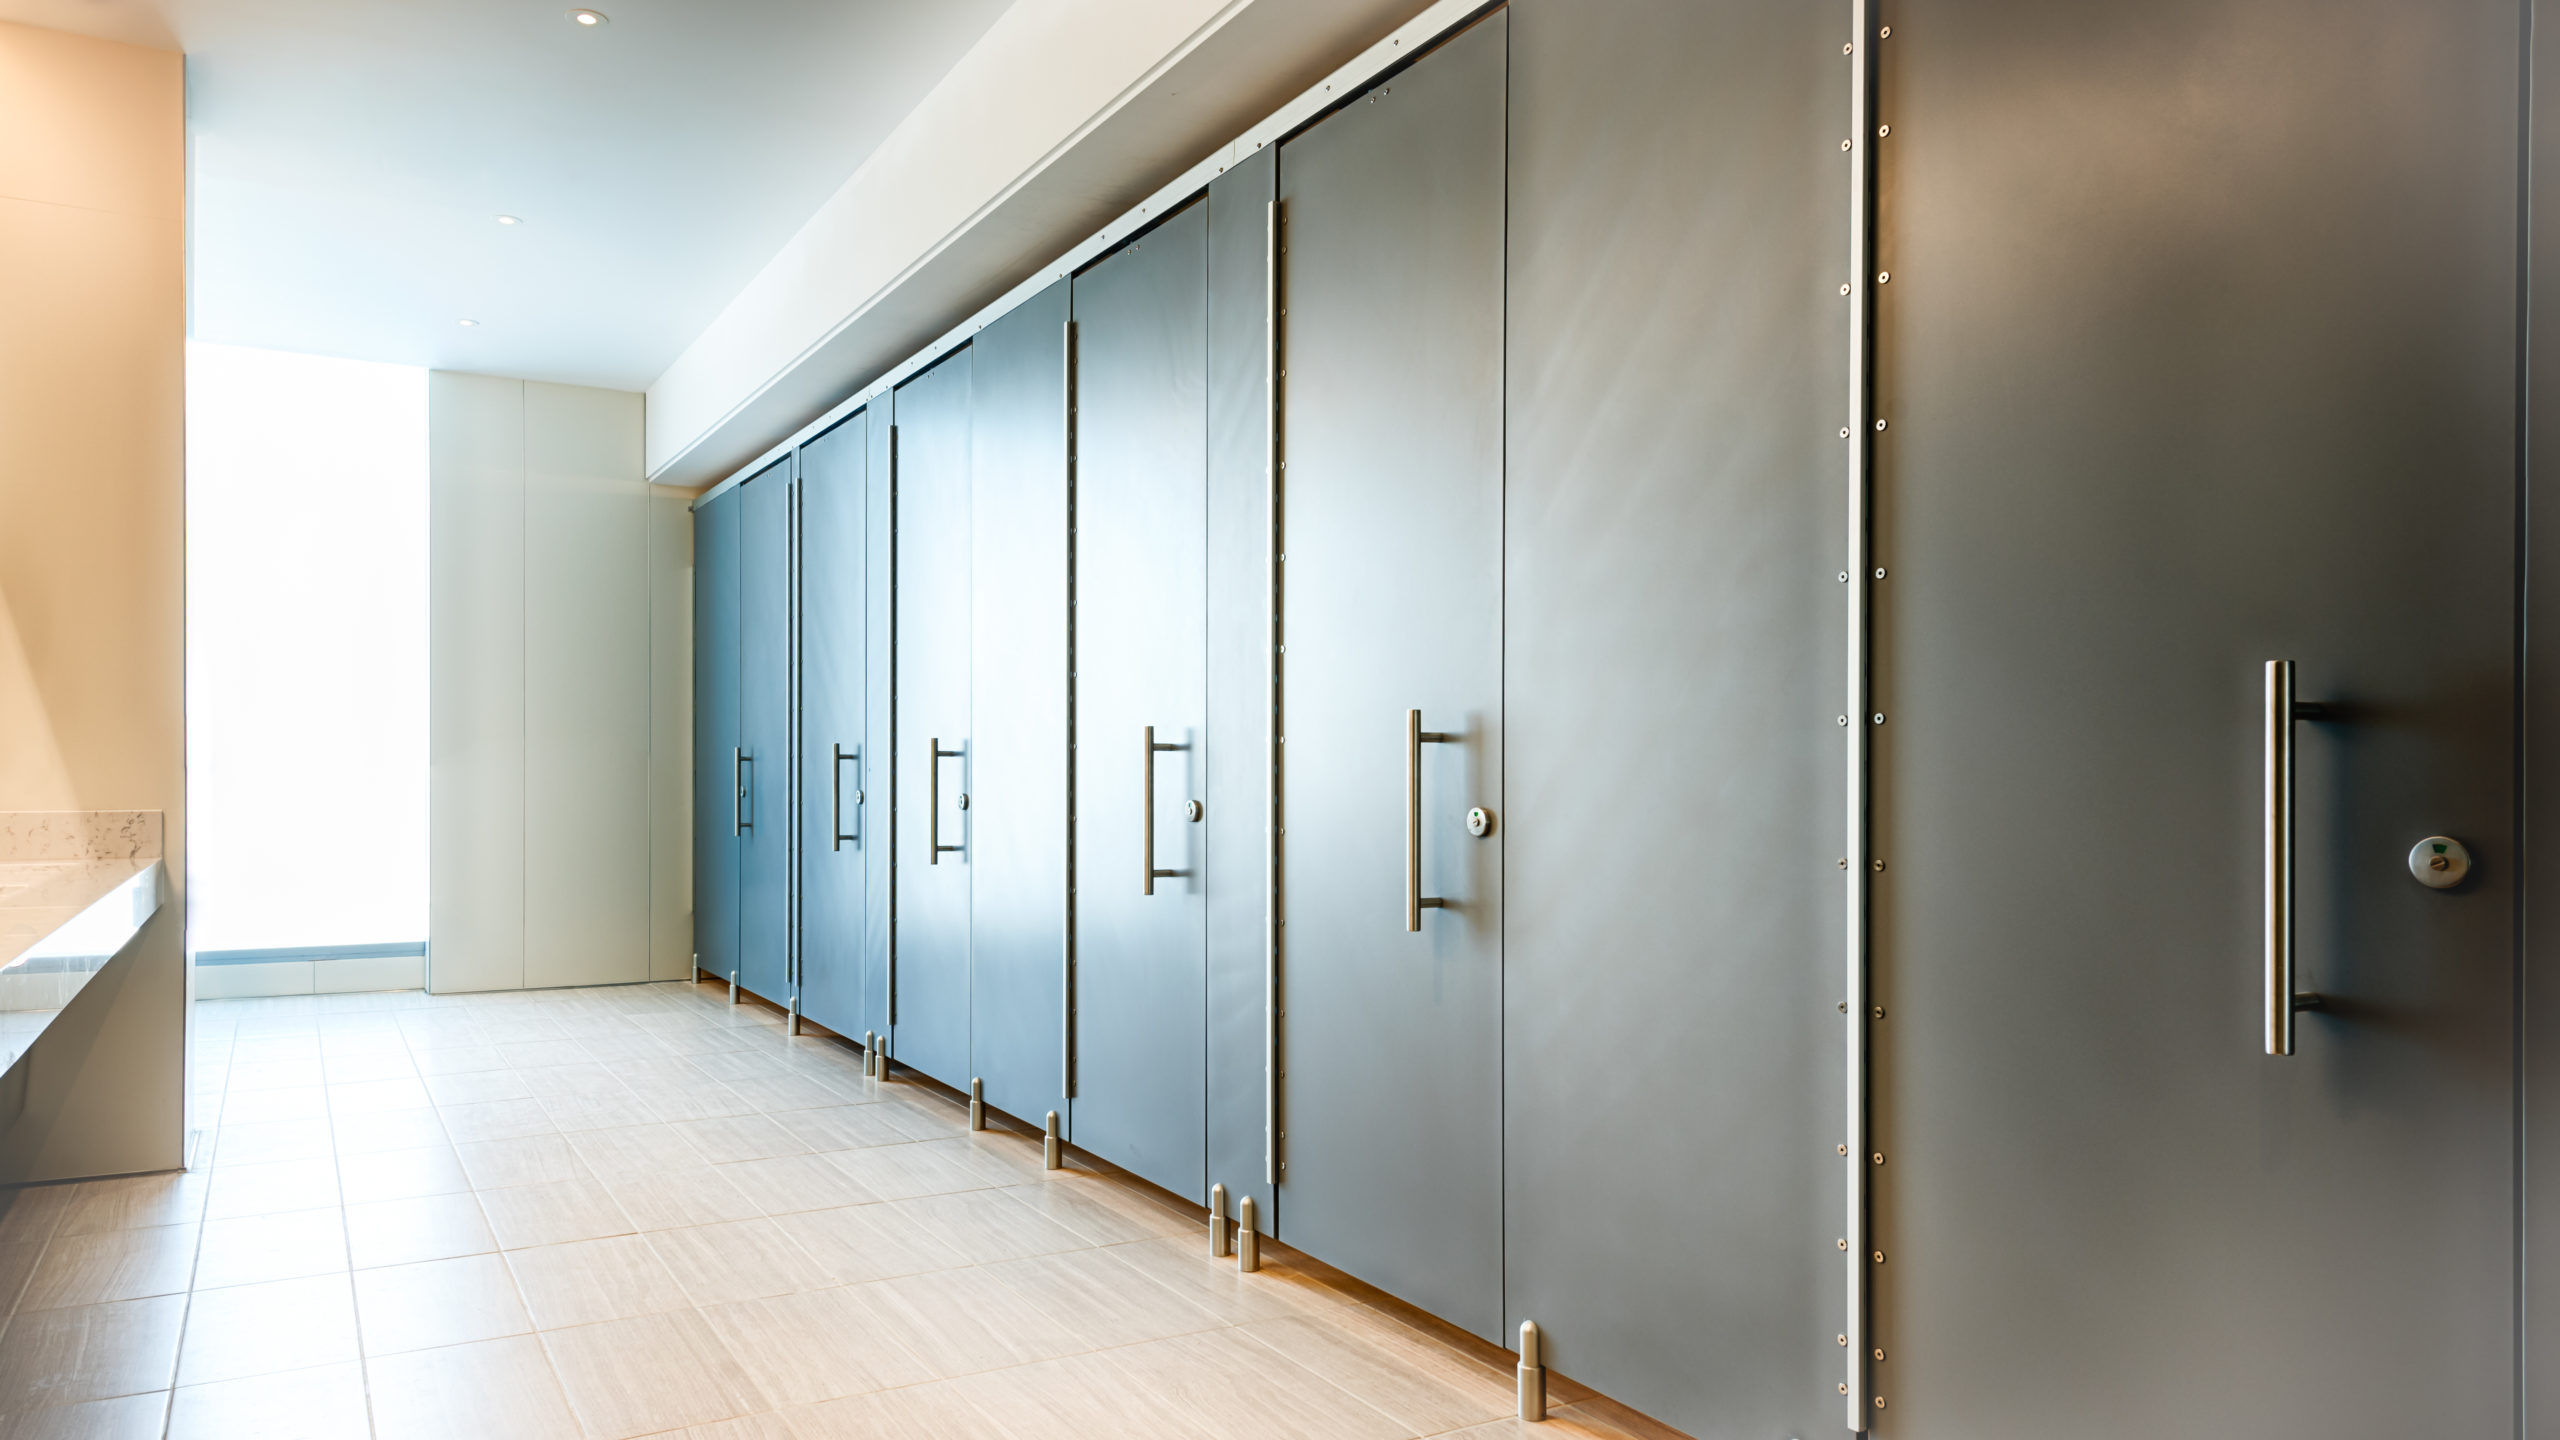 """Executive club bathroom with six European zero sightline solid surface partitions featuring 16"""" stainless steel bar pulls and pedestal footholds."""